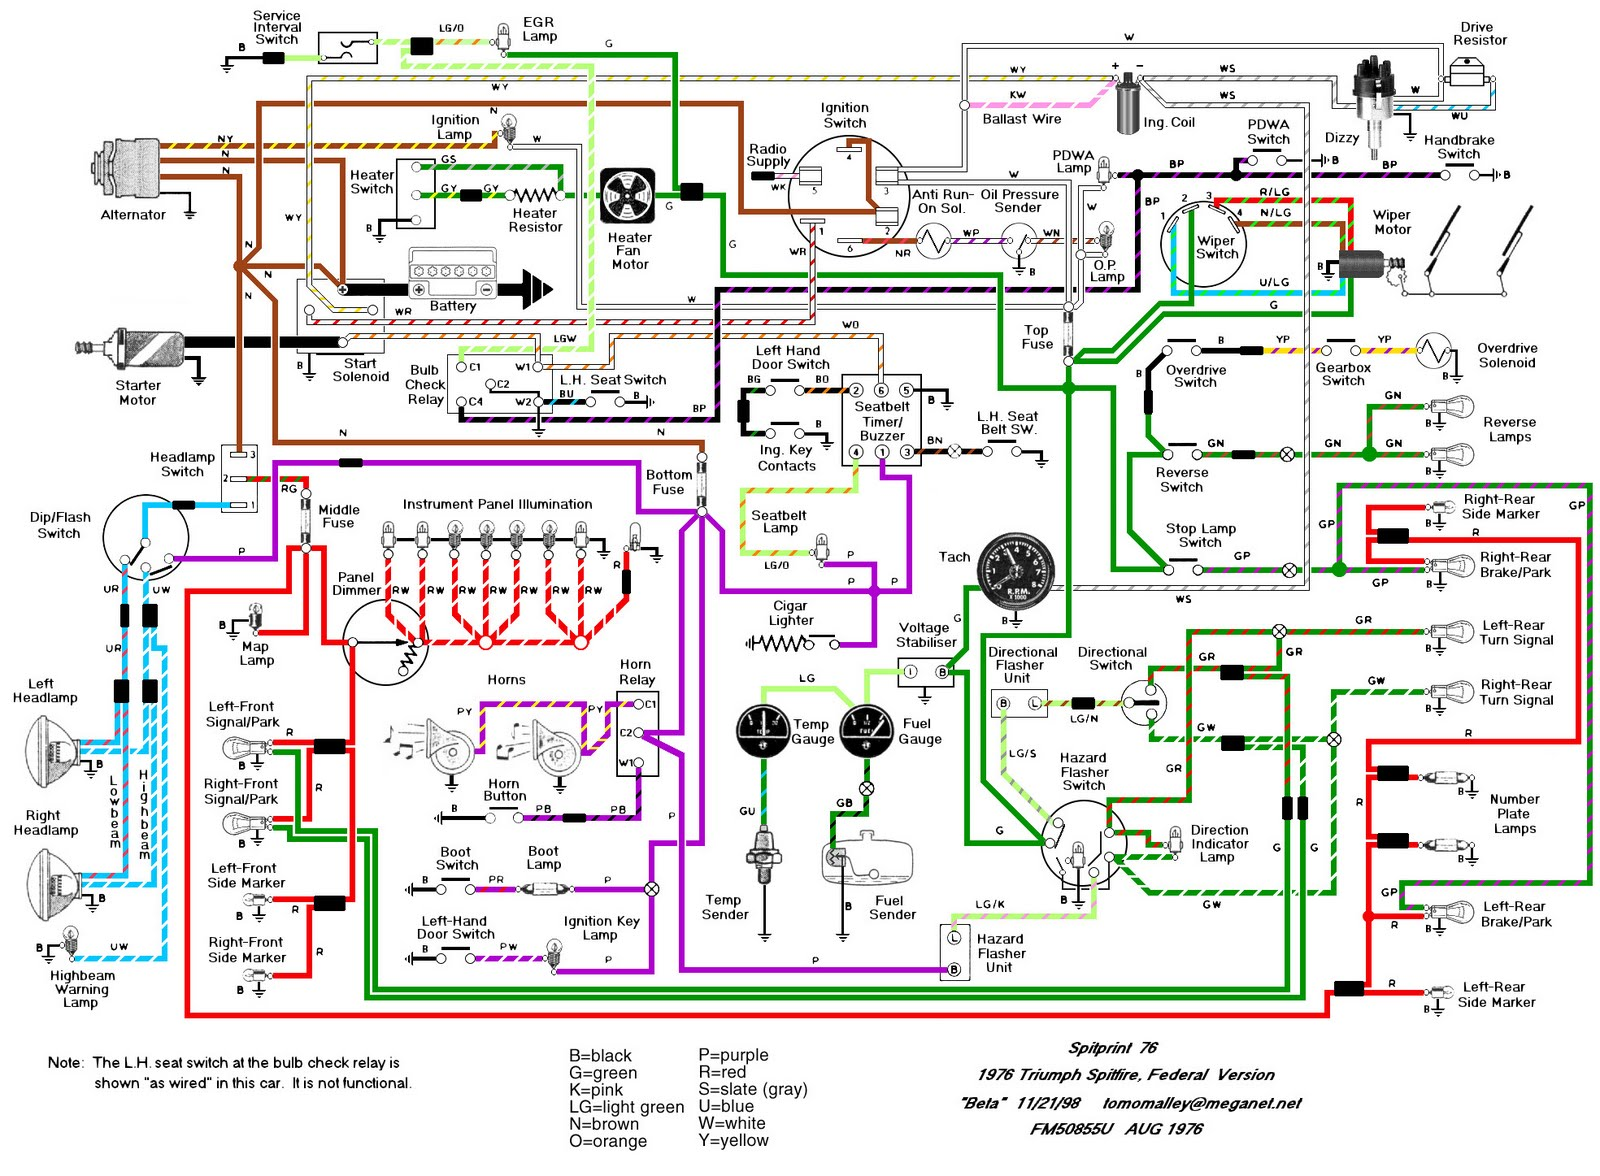 kenworth alternator wiring with 1976 Triumph Spitfire Wiring Diagram on Ford F650 Cummins Wiring Diagram additionally 10 Round Table Seating Chart Diagram besides SK25756 together with Wiring as well 4mnsb 2005 Kw Isx Xxxxx Pid 131 Fmi Pid.